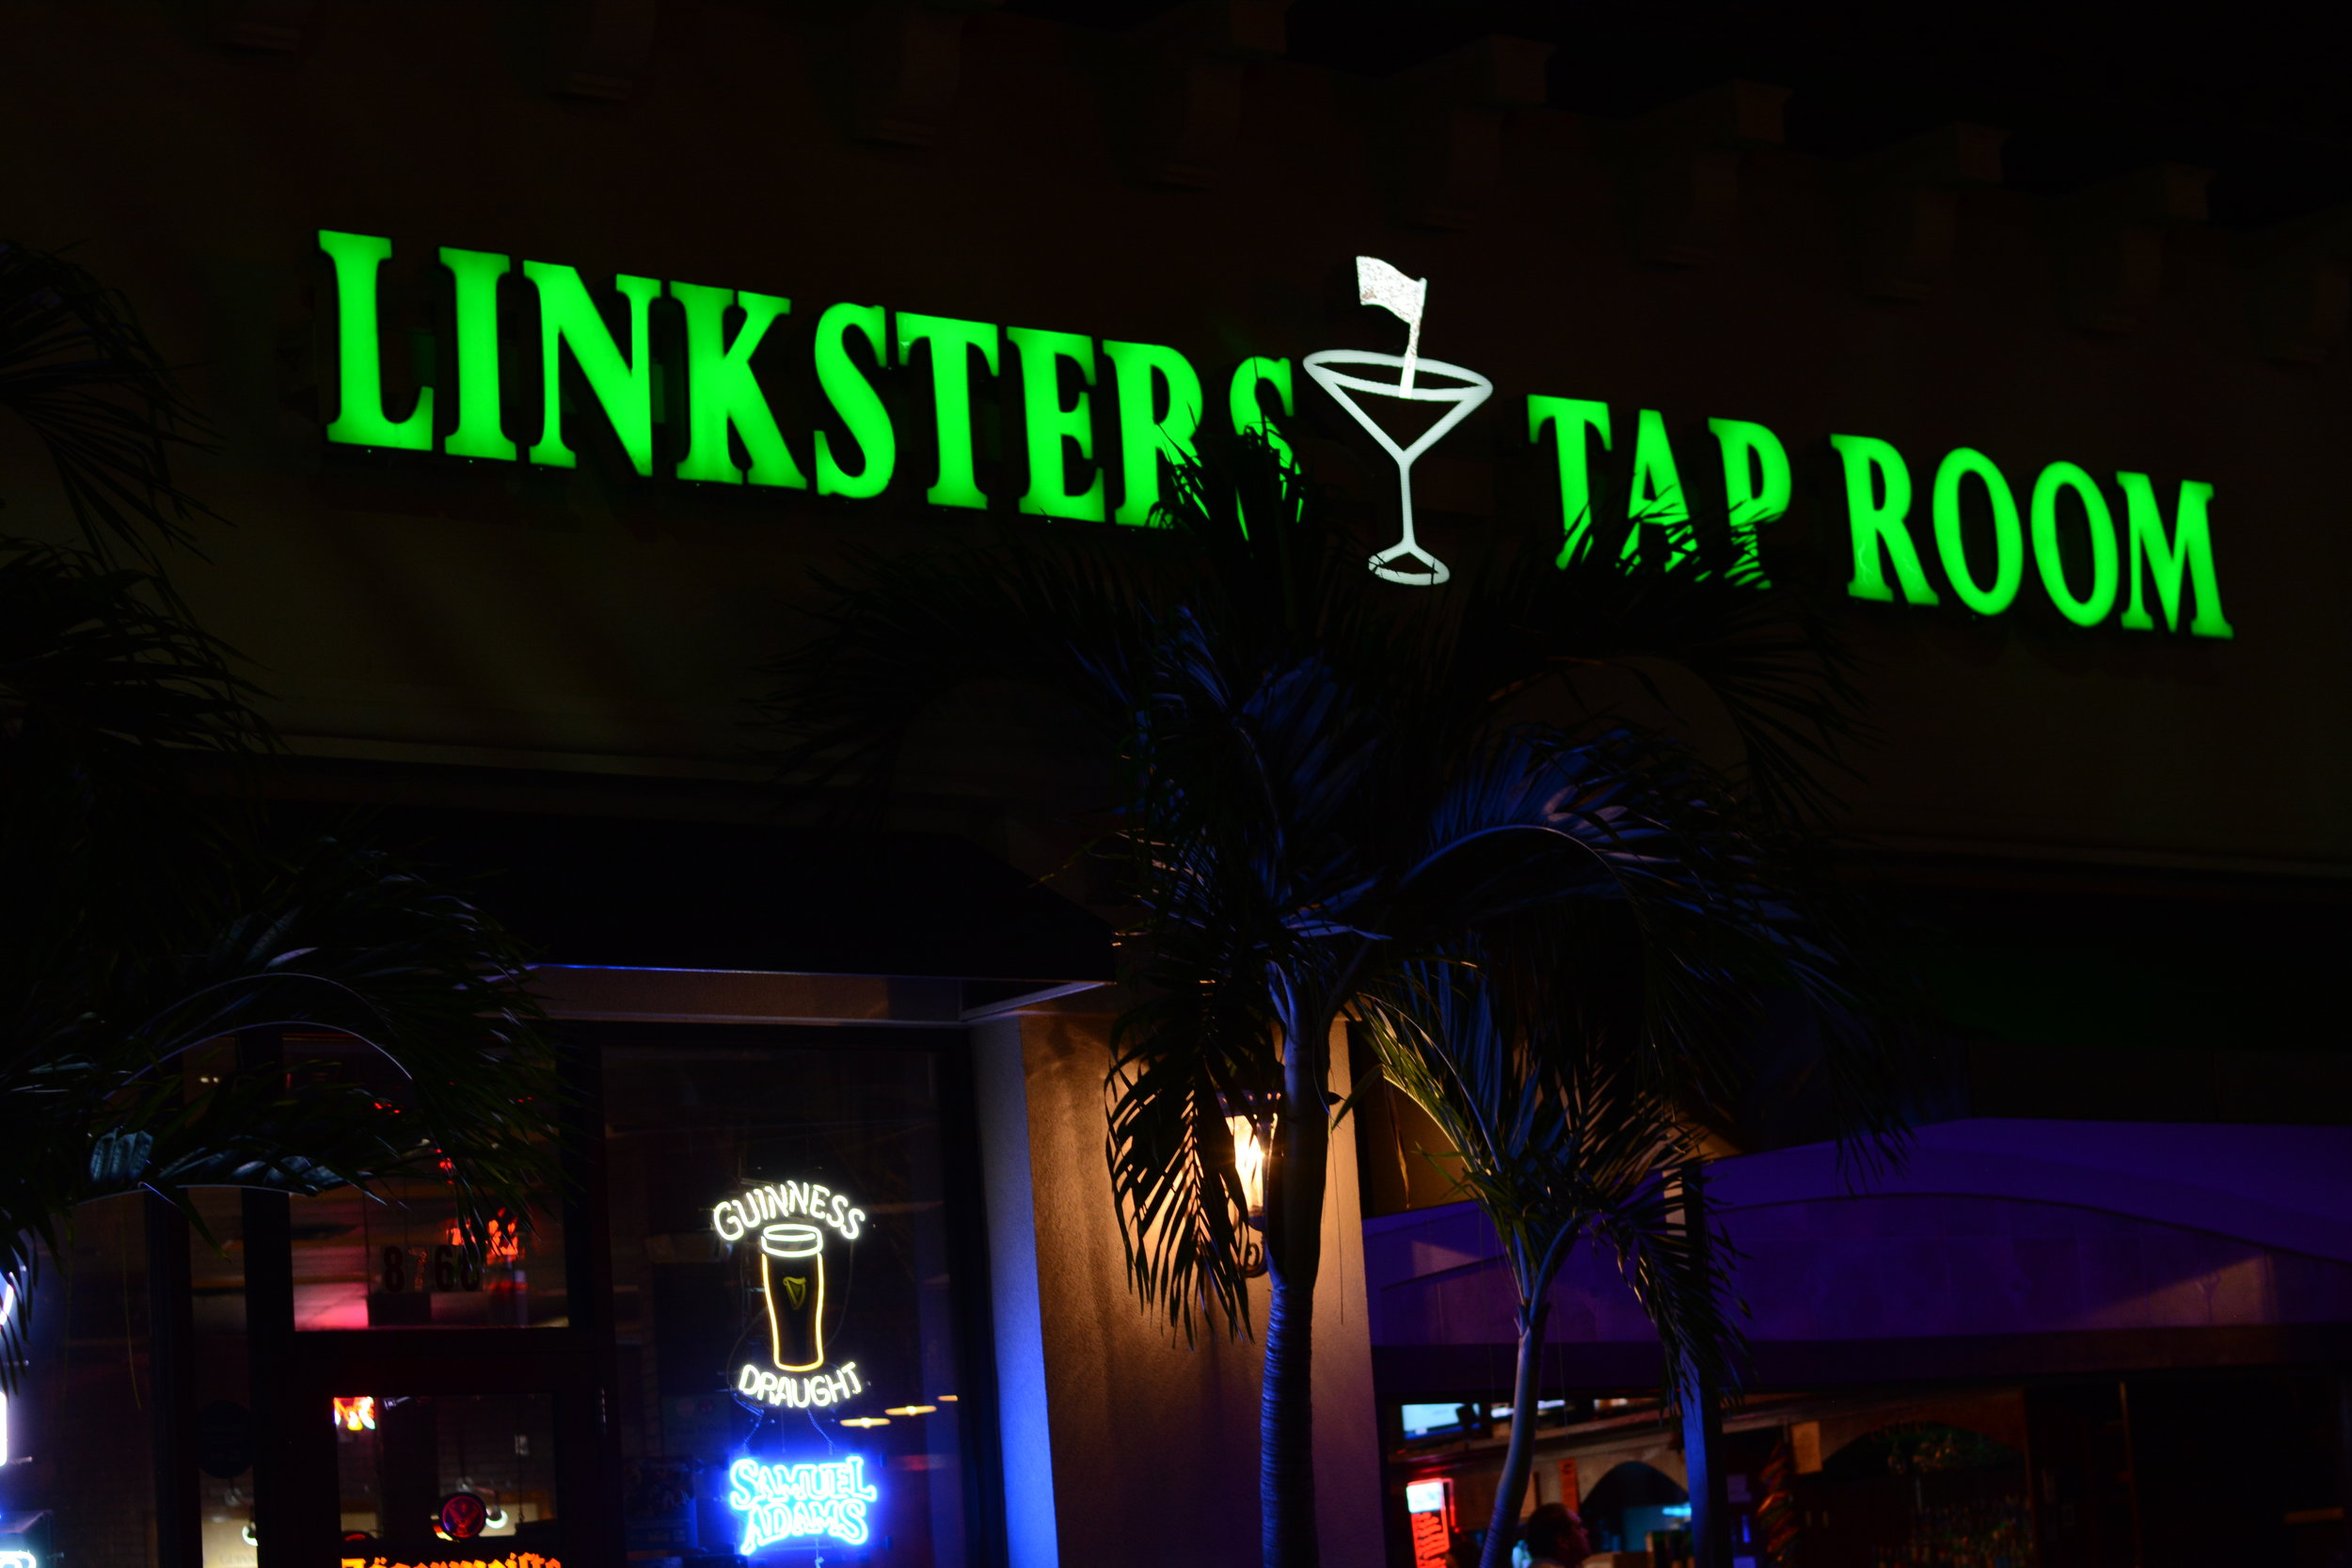 South Sarasota Linksters Tap Room